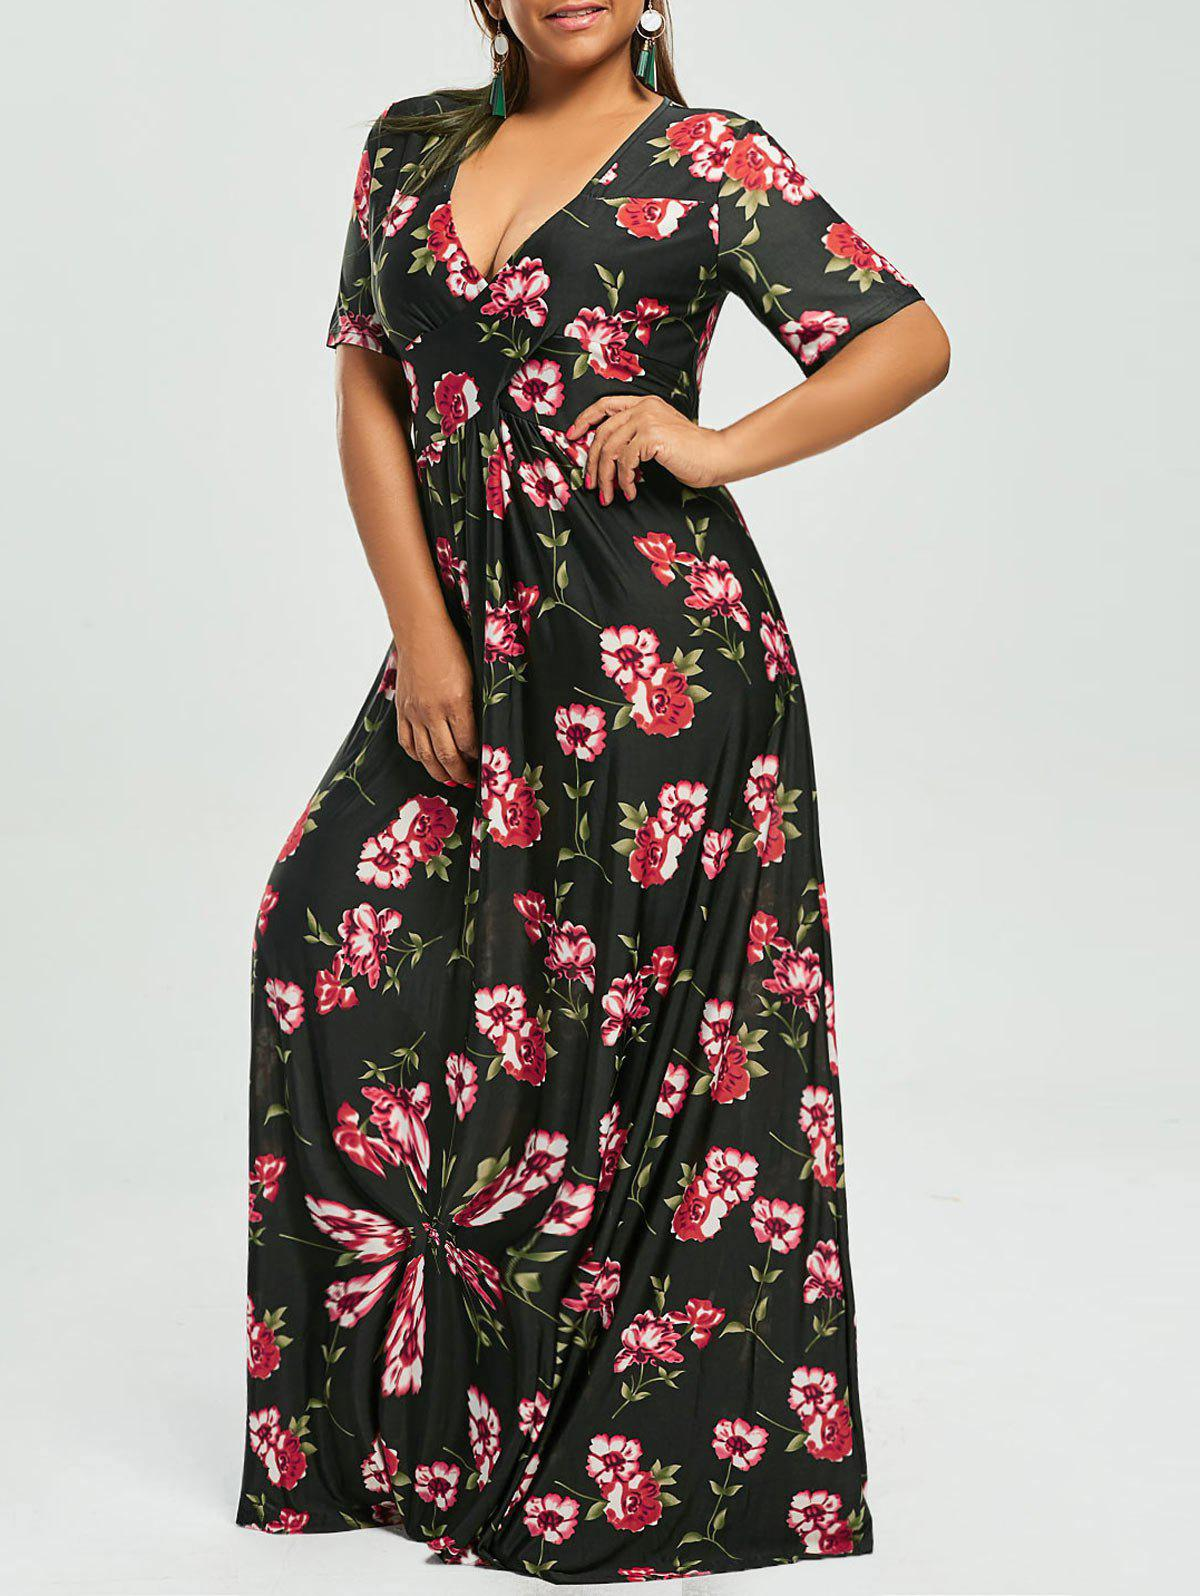 Floral Plunge Maxi Bohemian Dress for Plus SizeWOMEN<br><br>Size: 6XL; Color: BLACK; Style: Bohemian; Material: Cotton,Cotton Blend,Polyester; Silhouette: Beach; Dresses Length: Floor-Length; Neckline: V-Neck; Sleeve Length: Short Sleeves; Waist: Empire; Pattern Type: Floral,Print; With Belt: No; Season: Spring,Summer; Weight: 0.3500kg; Package Contents: 1 x Dress;